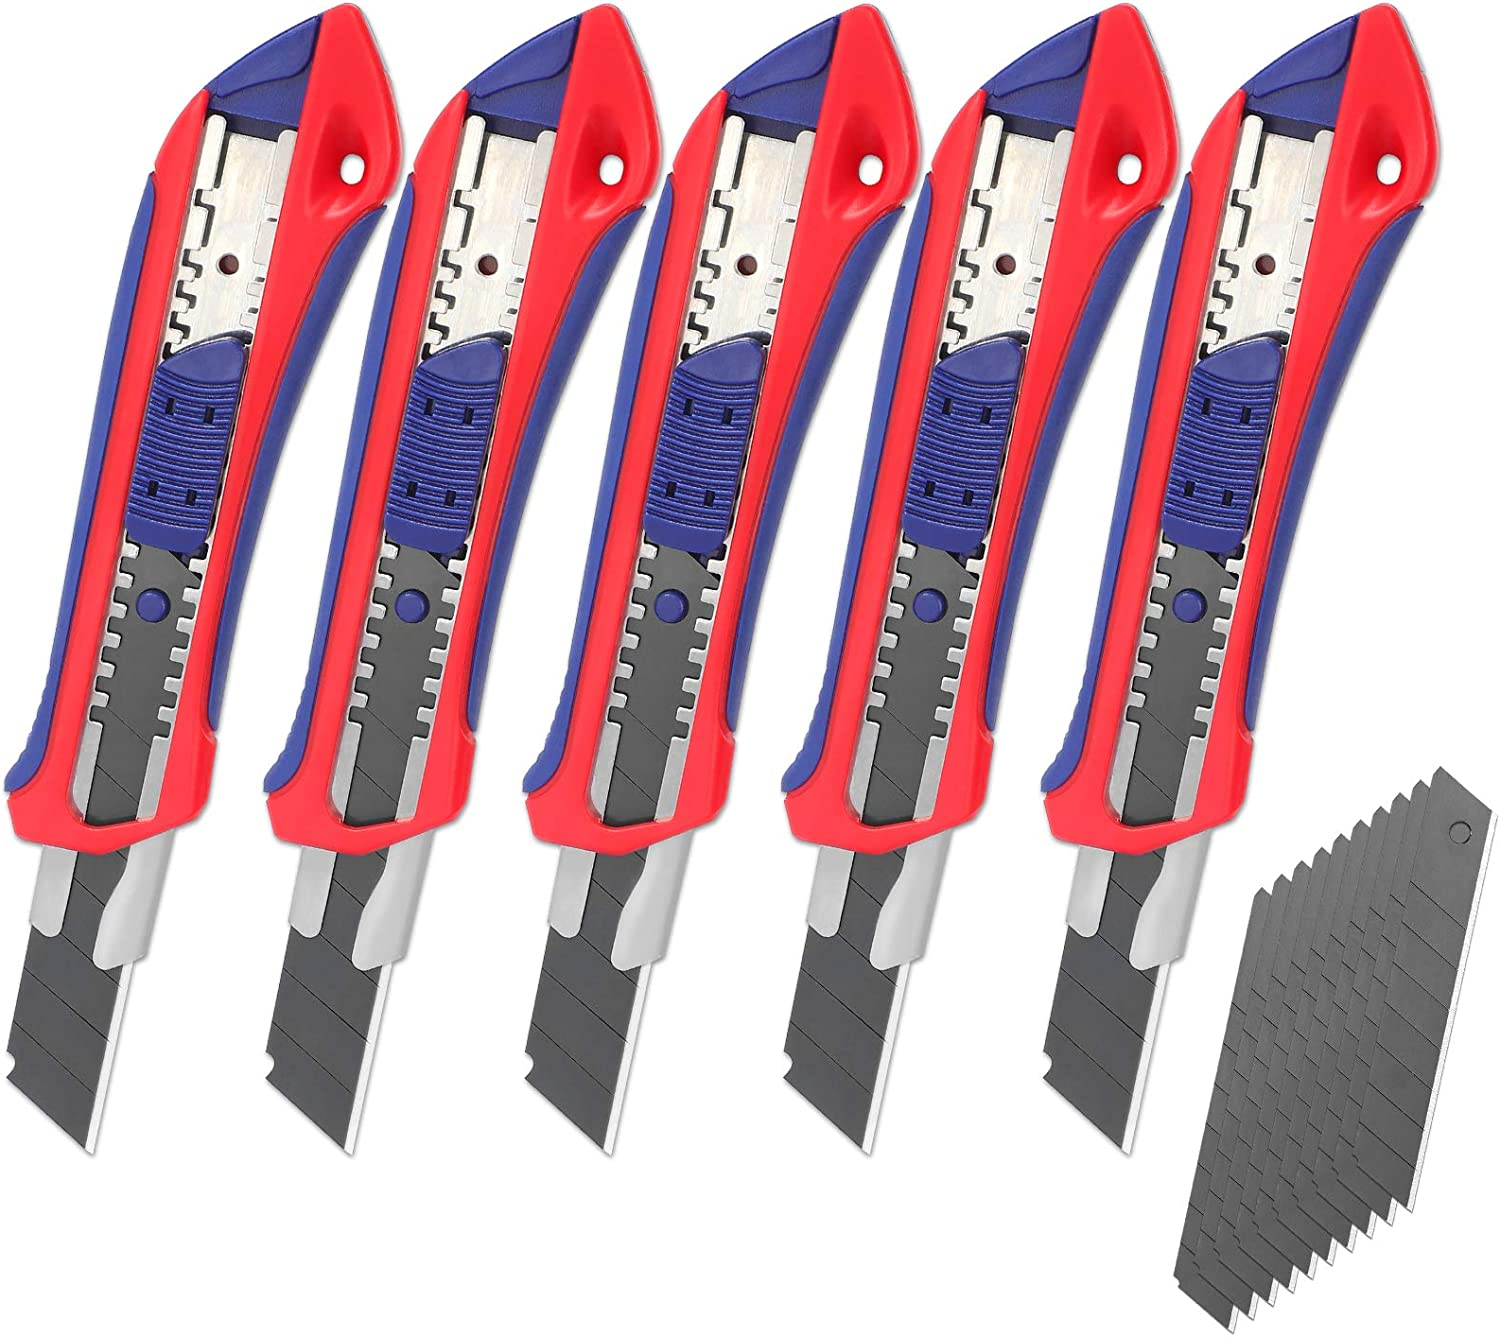 Best Snap-Off Utility Knife